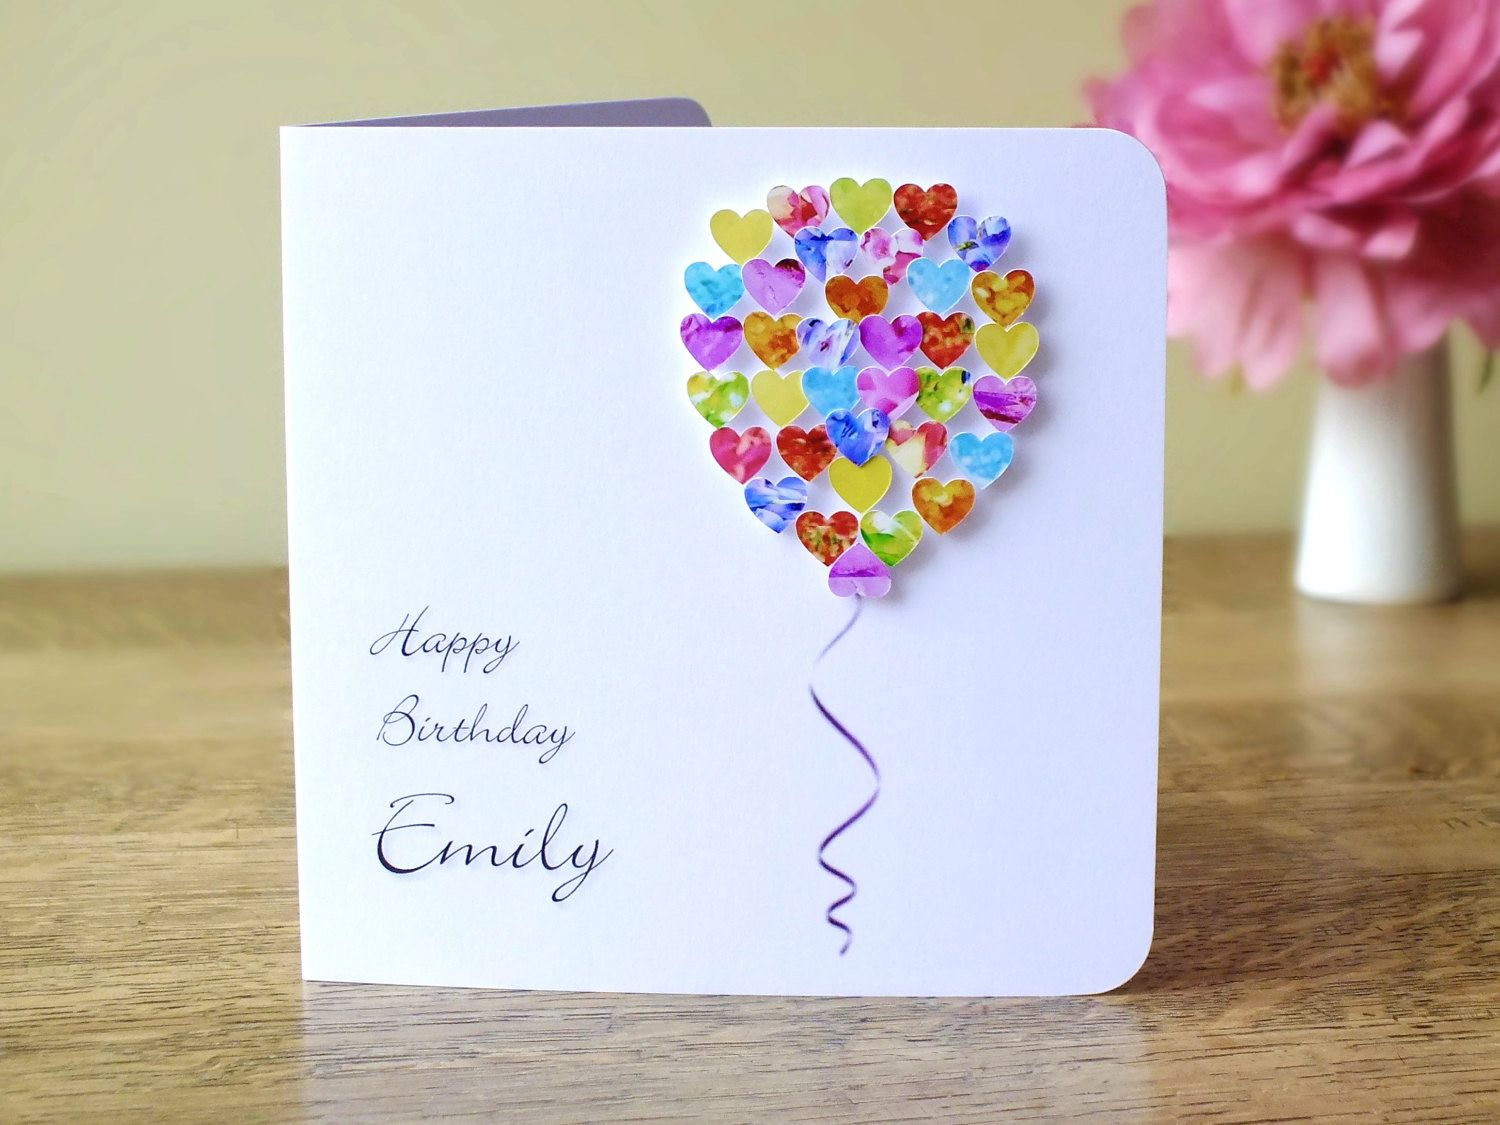 Handmade 3D Birthday Card Personalised Colourful Balloons